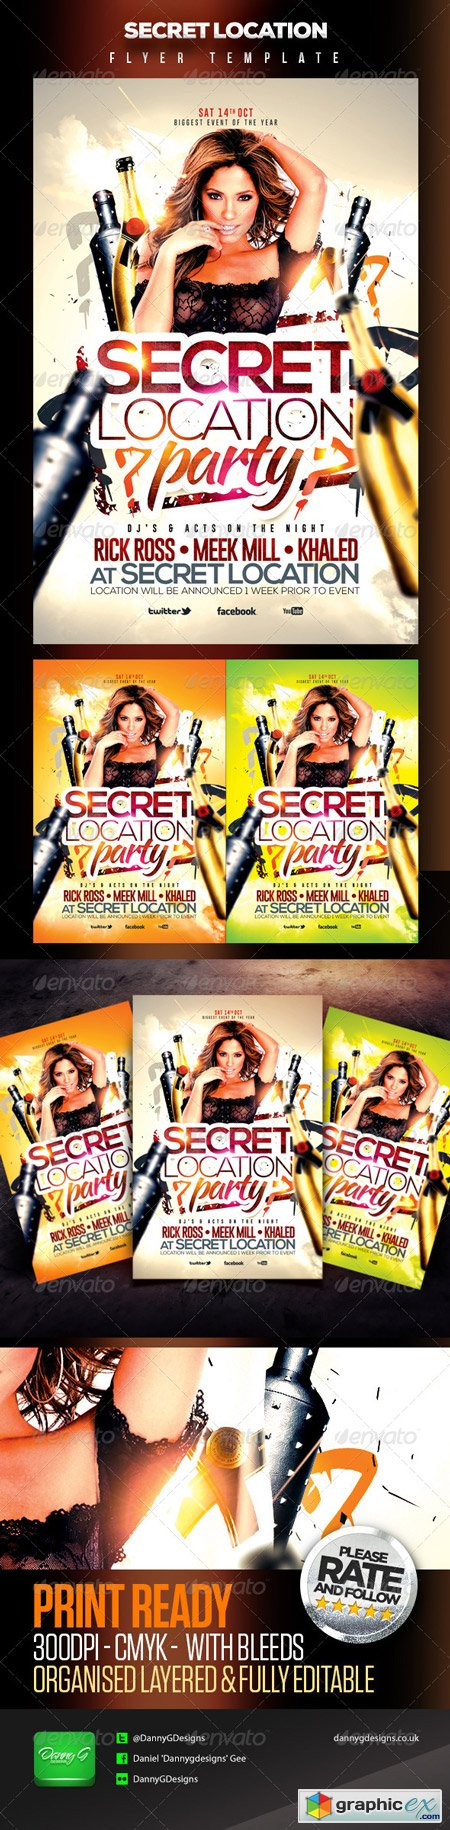 Secret Location Nightclub Party Flyer Template